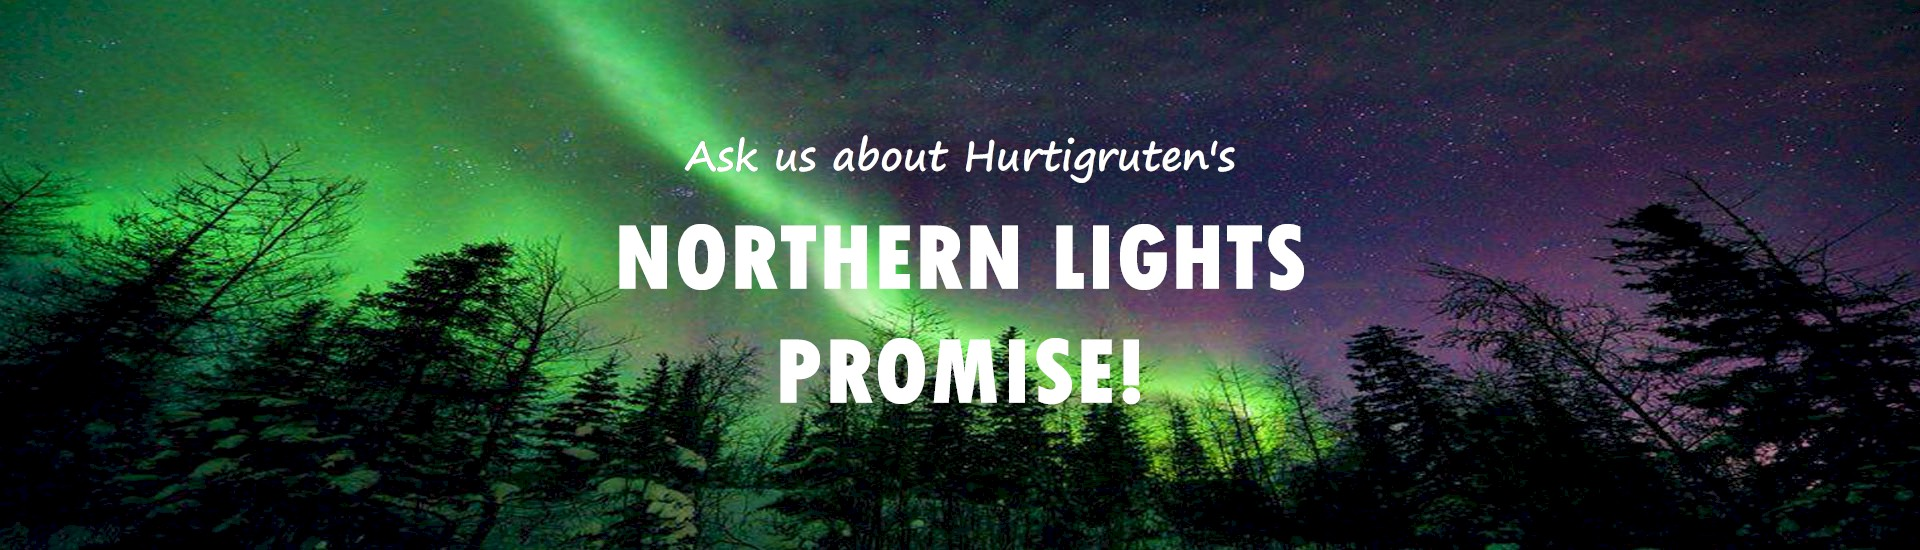 Ask us about Hurtigruten's